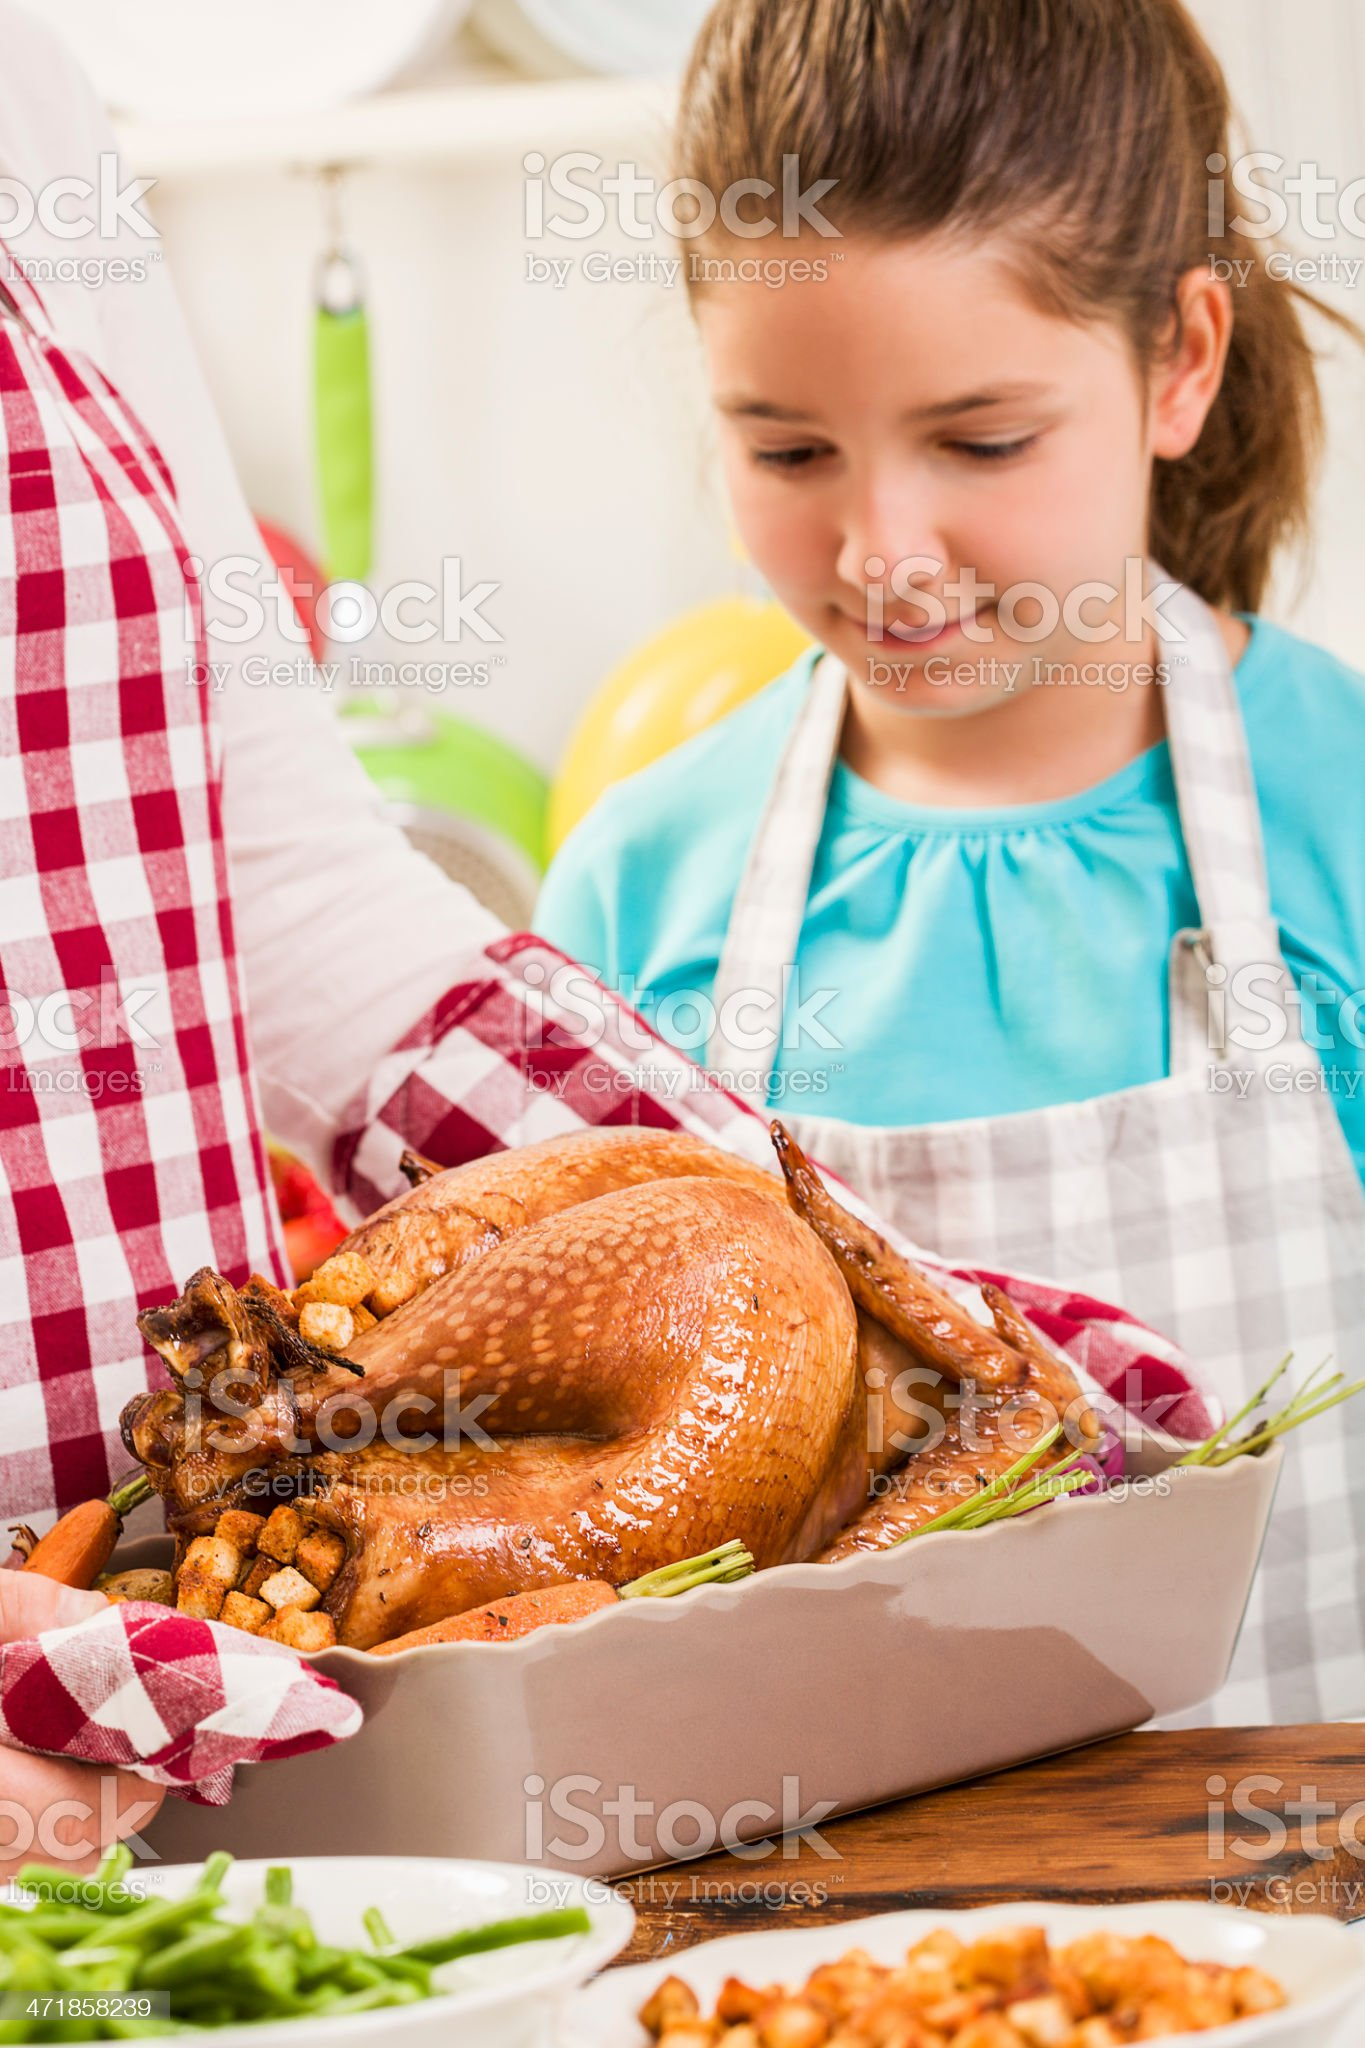 Traditional Roasted Thanksgiving Turkey for Holidays royalty-free stock photo